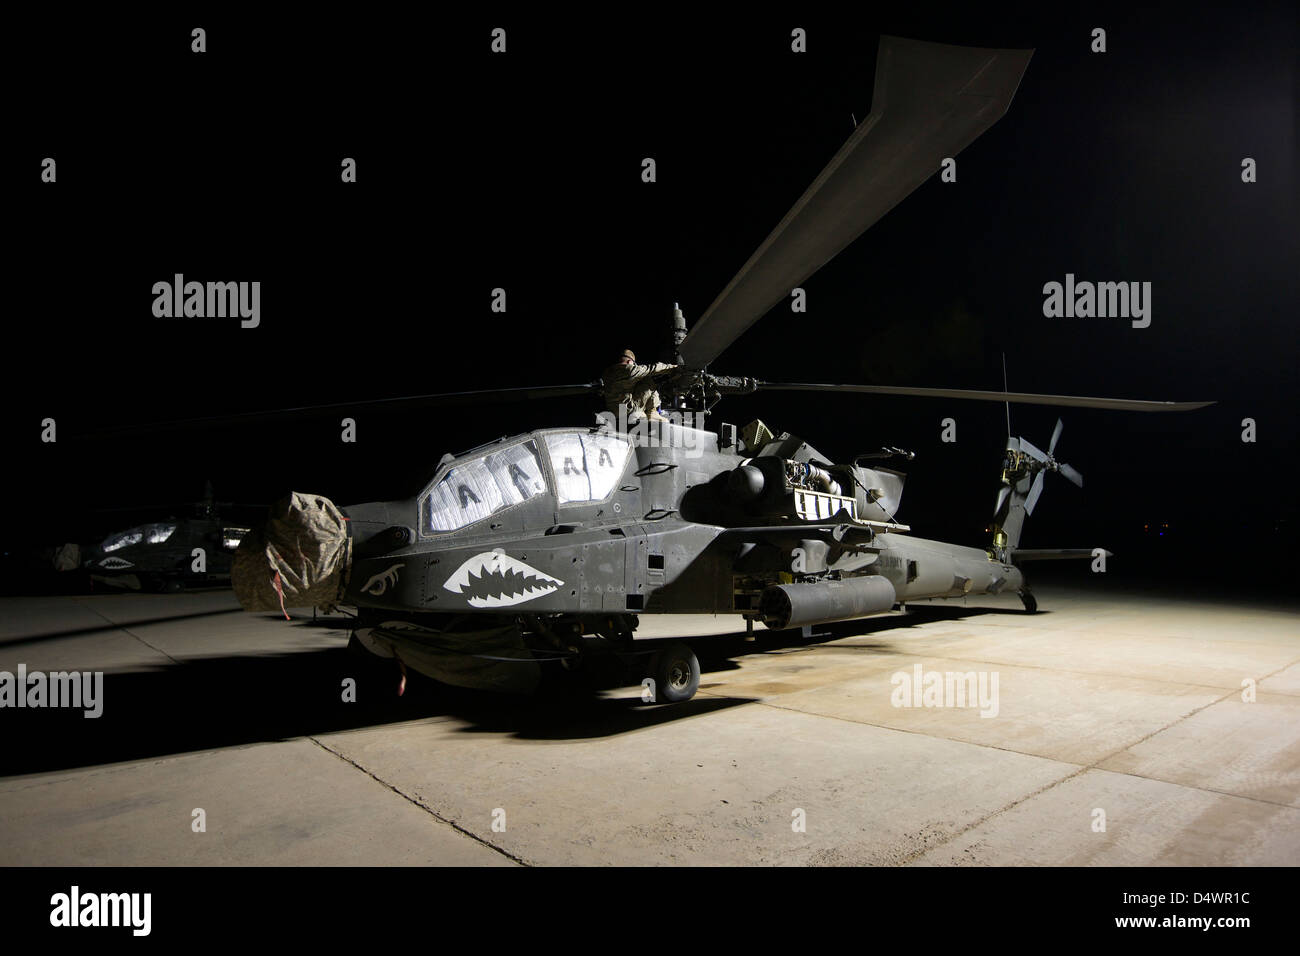 Maintenance crew work on an AH-64D Apache Longbow at night on a military base in Iraq. - Stock Image